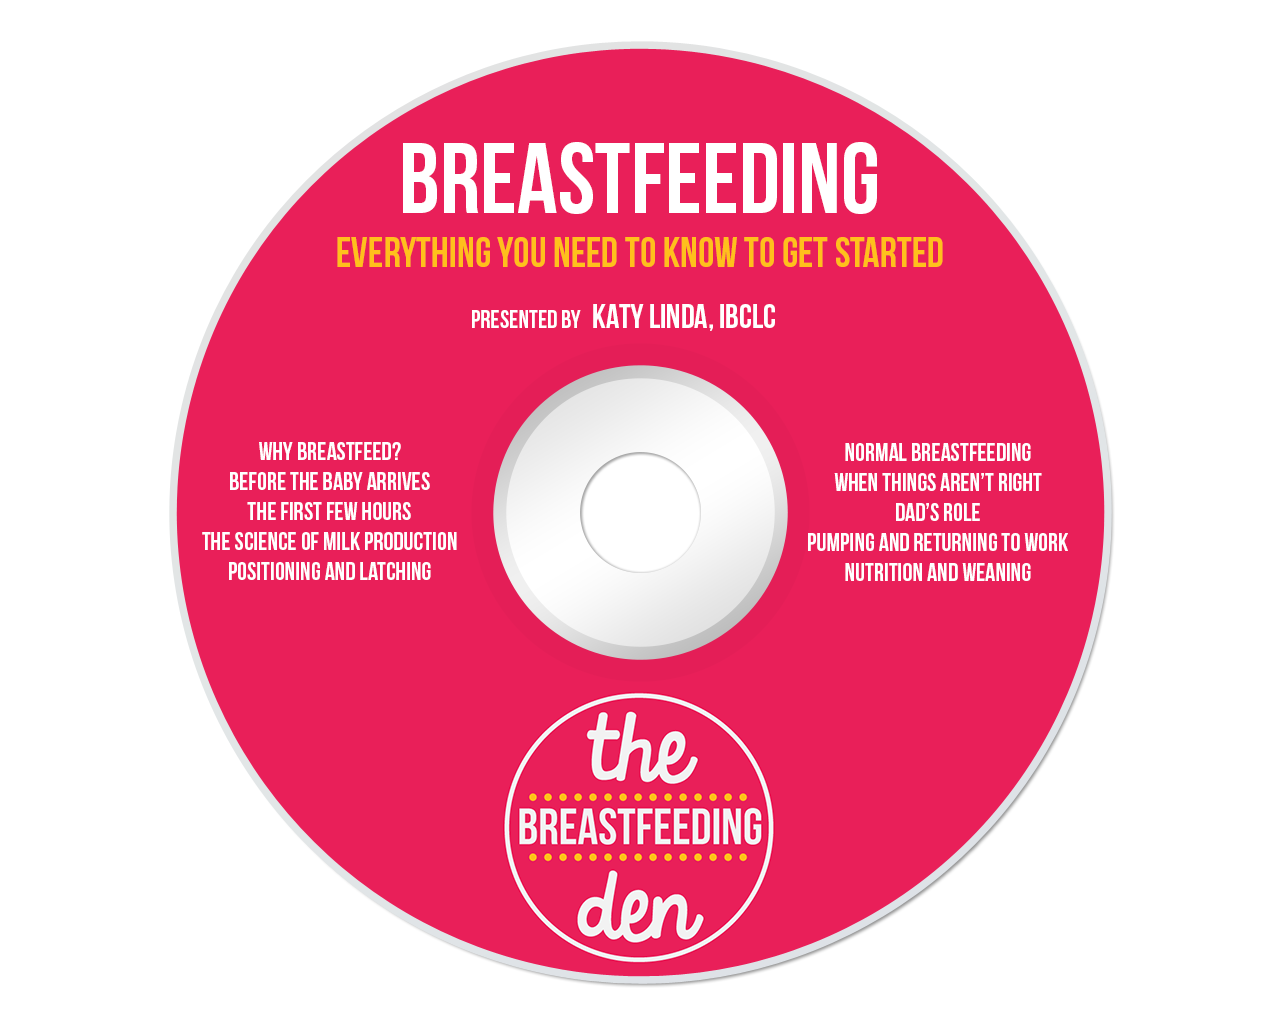 Breastfeeding - Everything You Need to Know to Get Started